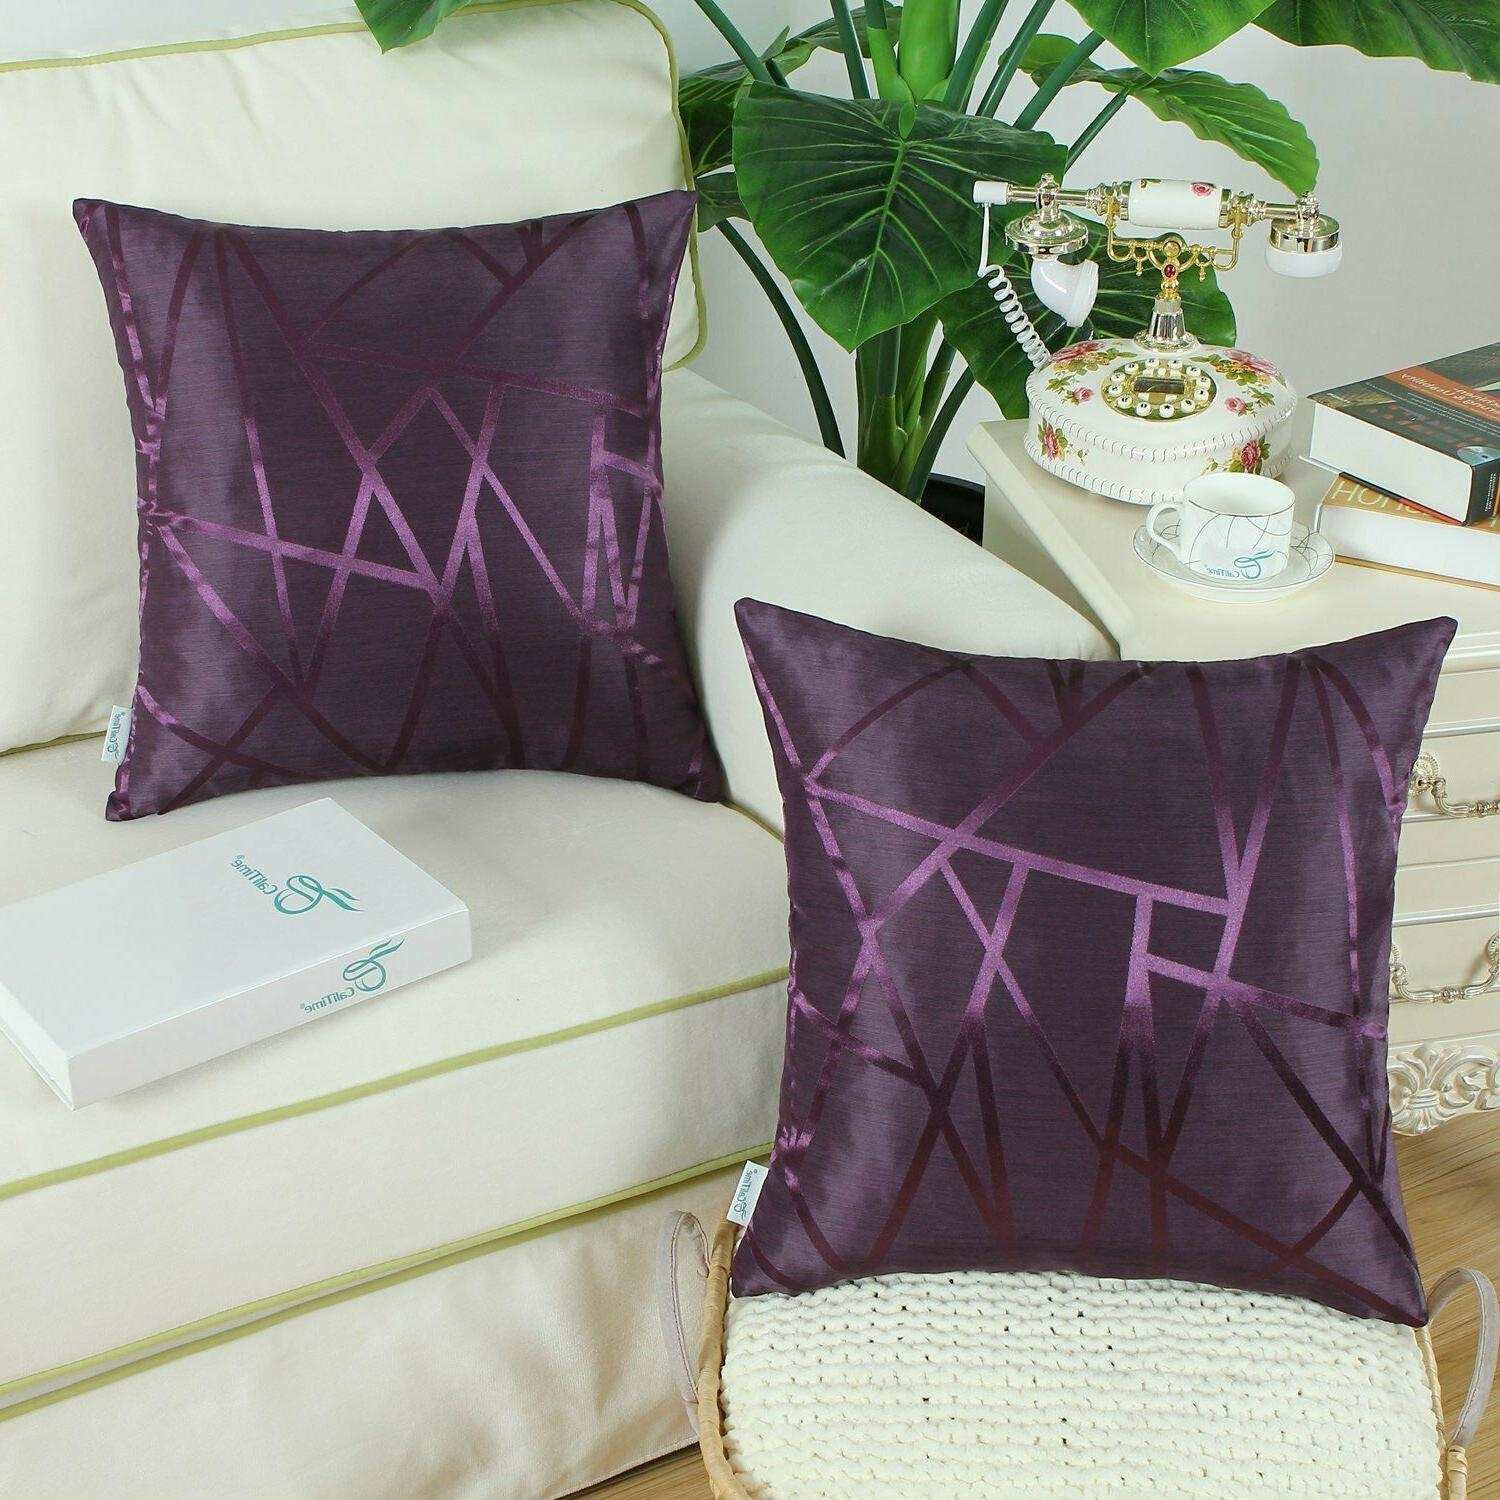 Purple Throw Covers - Contrast Calitime 18x18, Pack 2